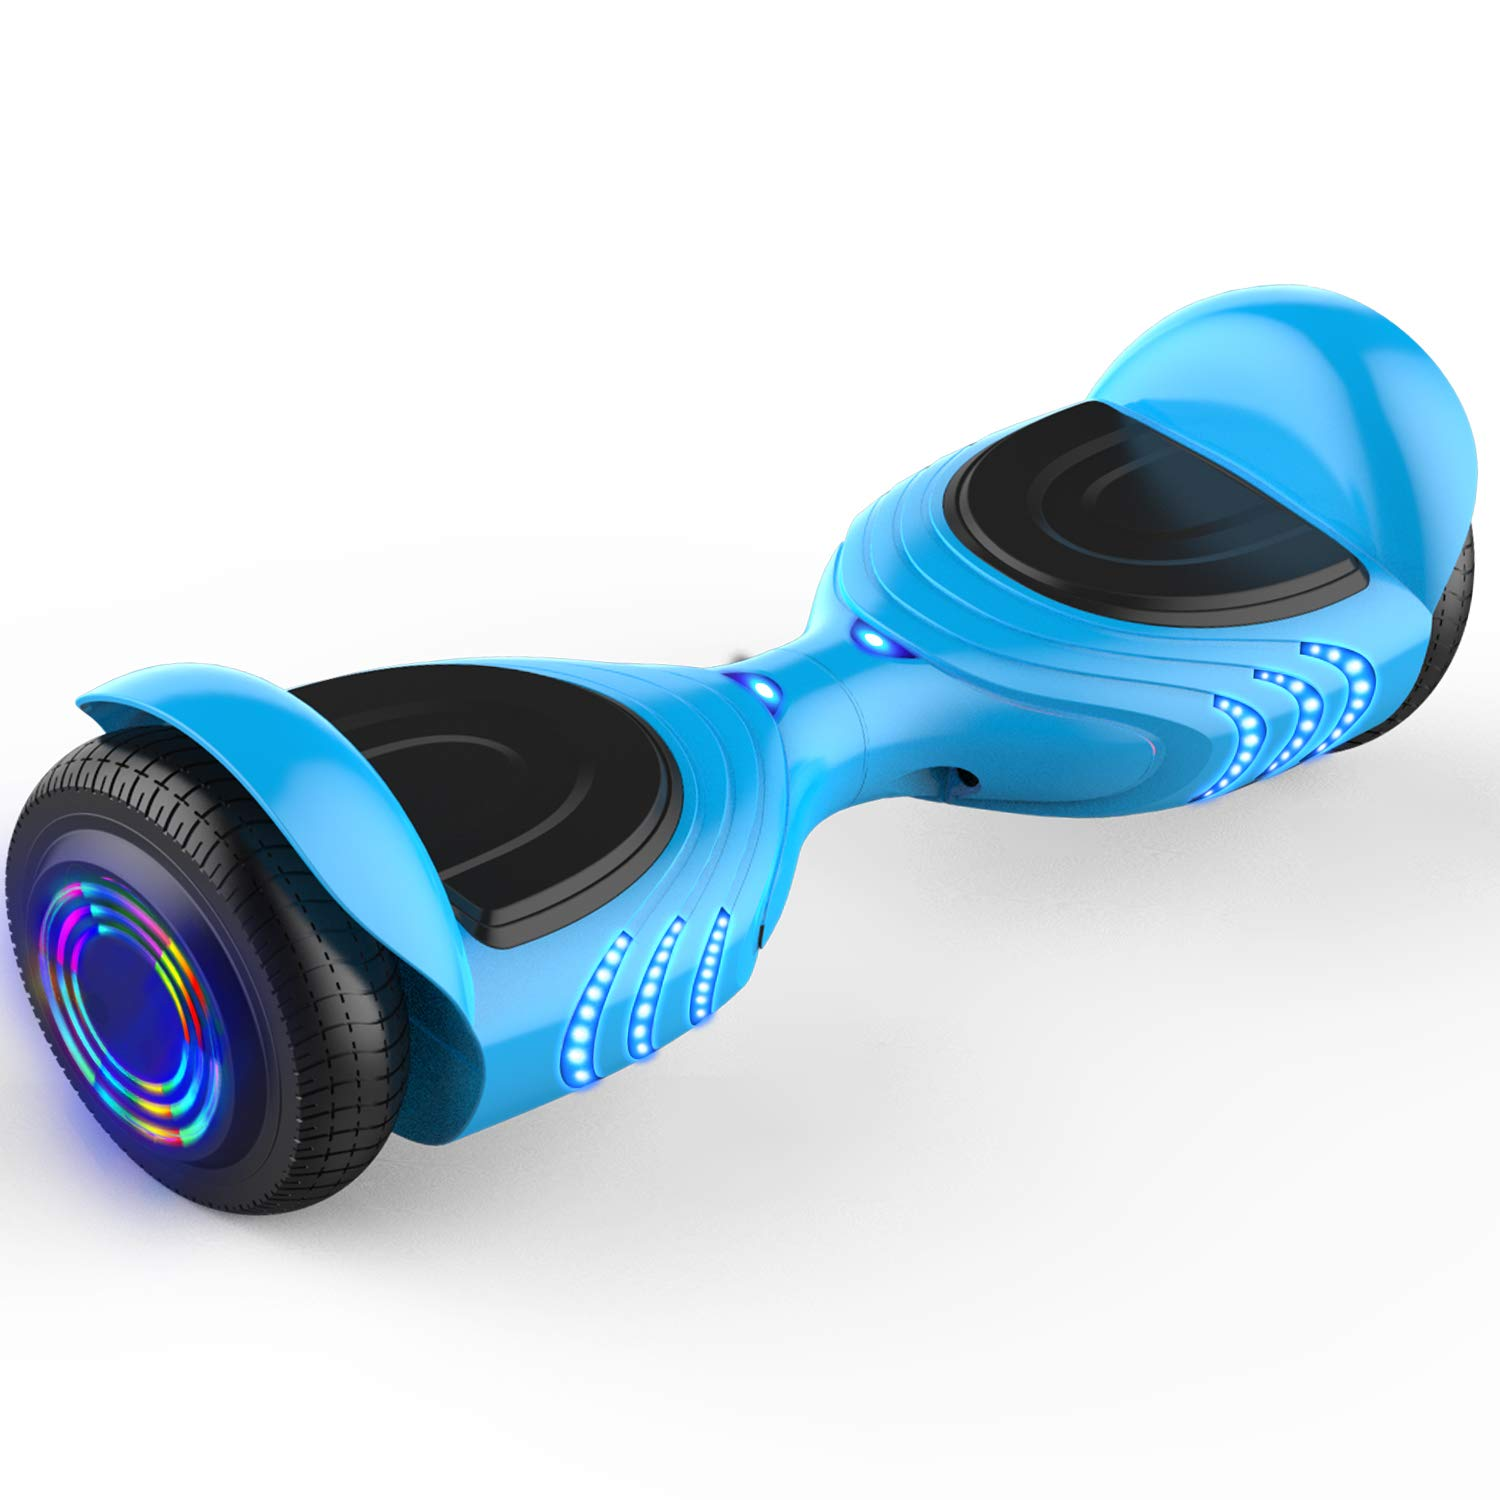 Scooter Led Beleuchtung | Hoverboards 6 5zoll Self Balance Board Elektro Scooter Eu